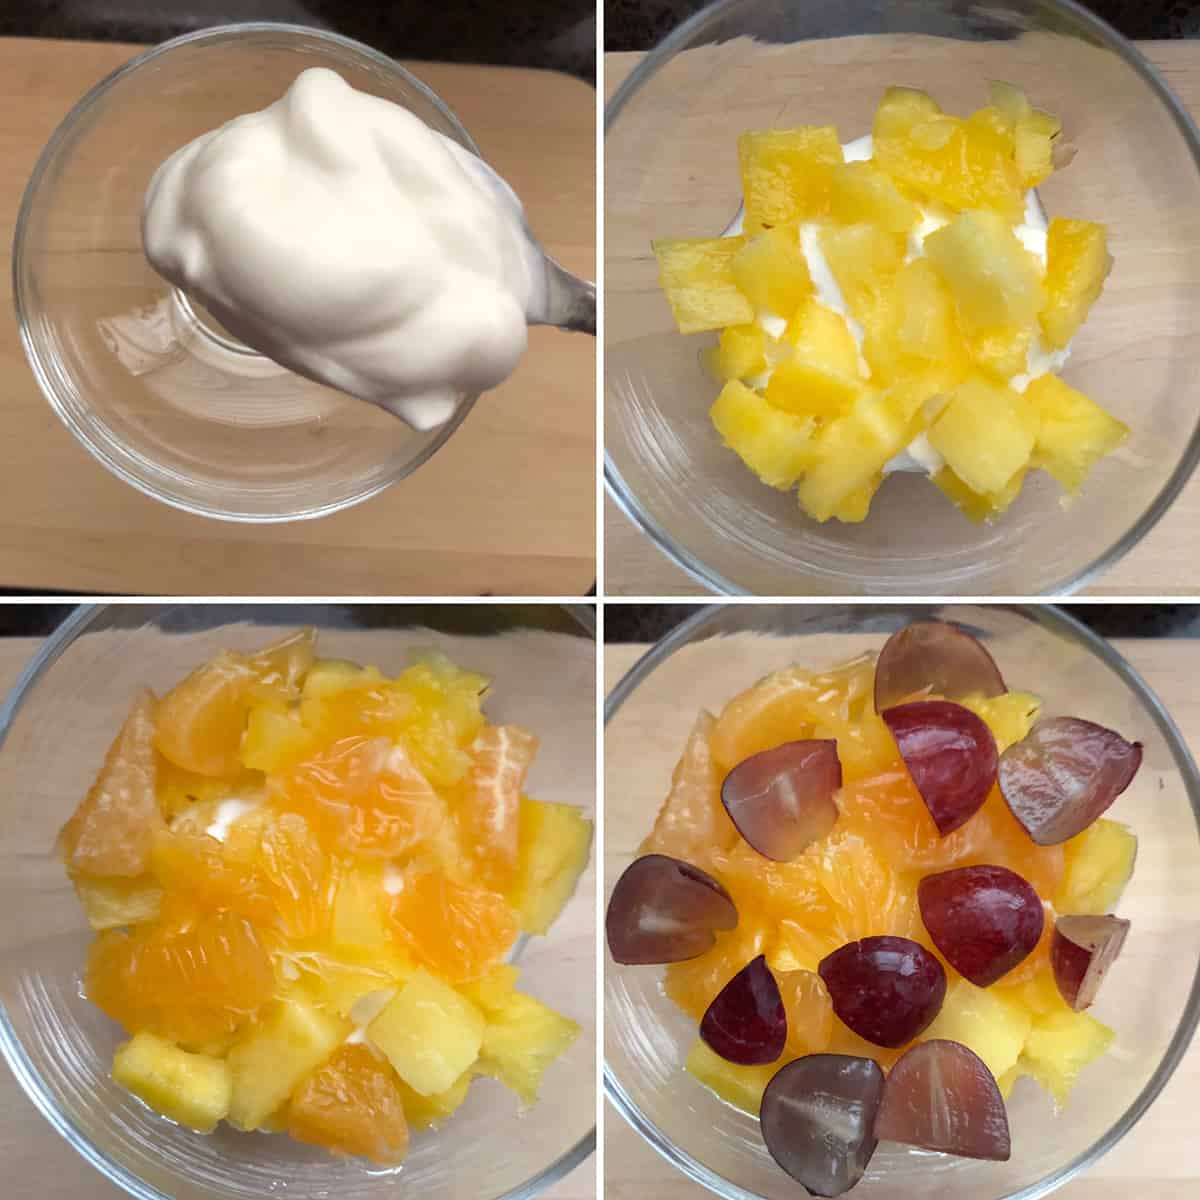 Step by step photos showing the building of Ambrosia salad parfait